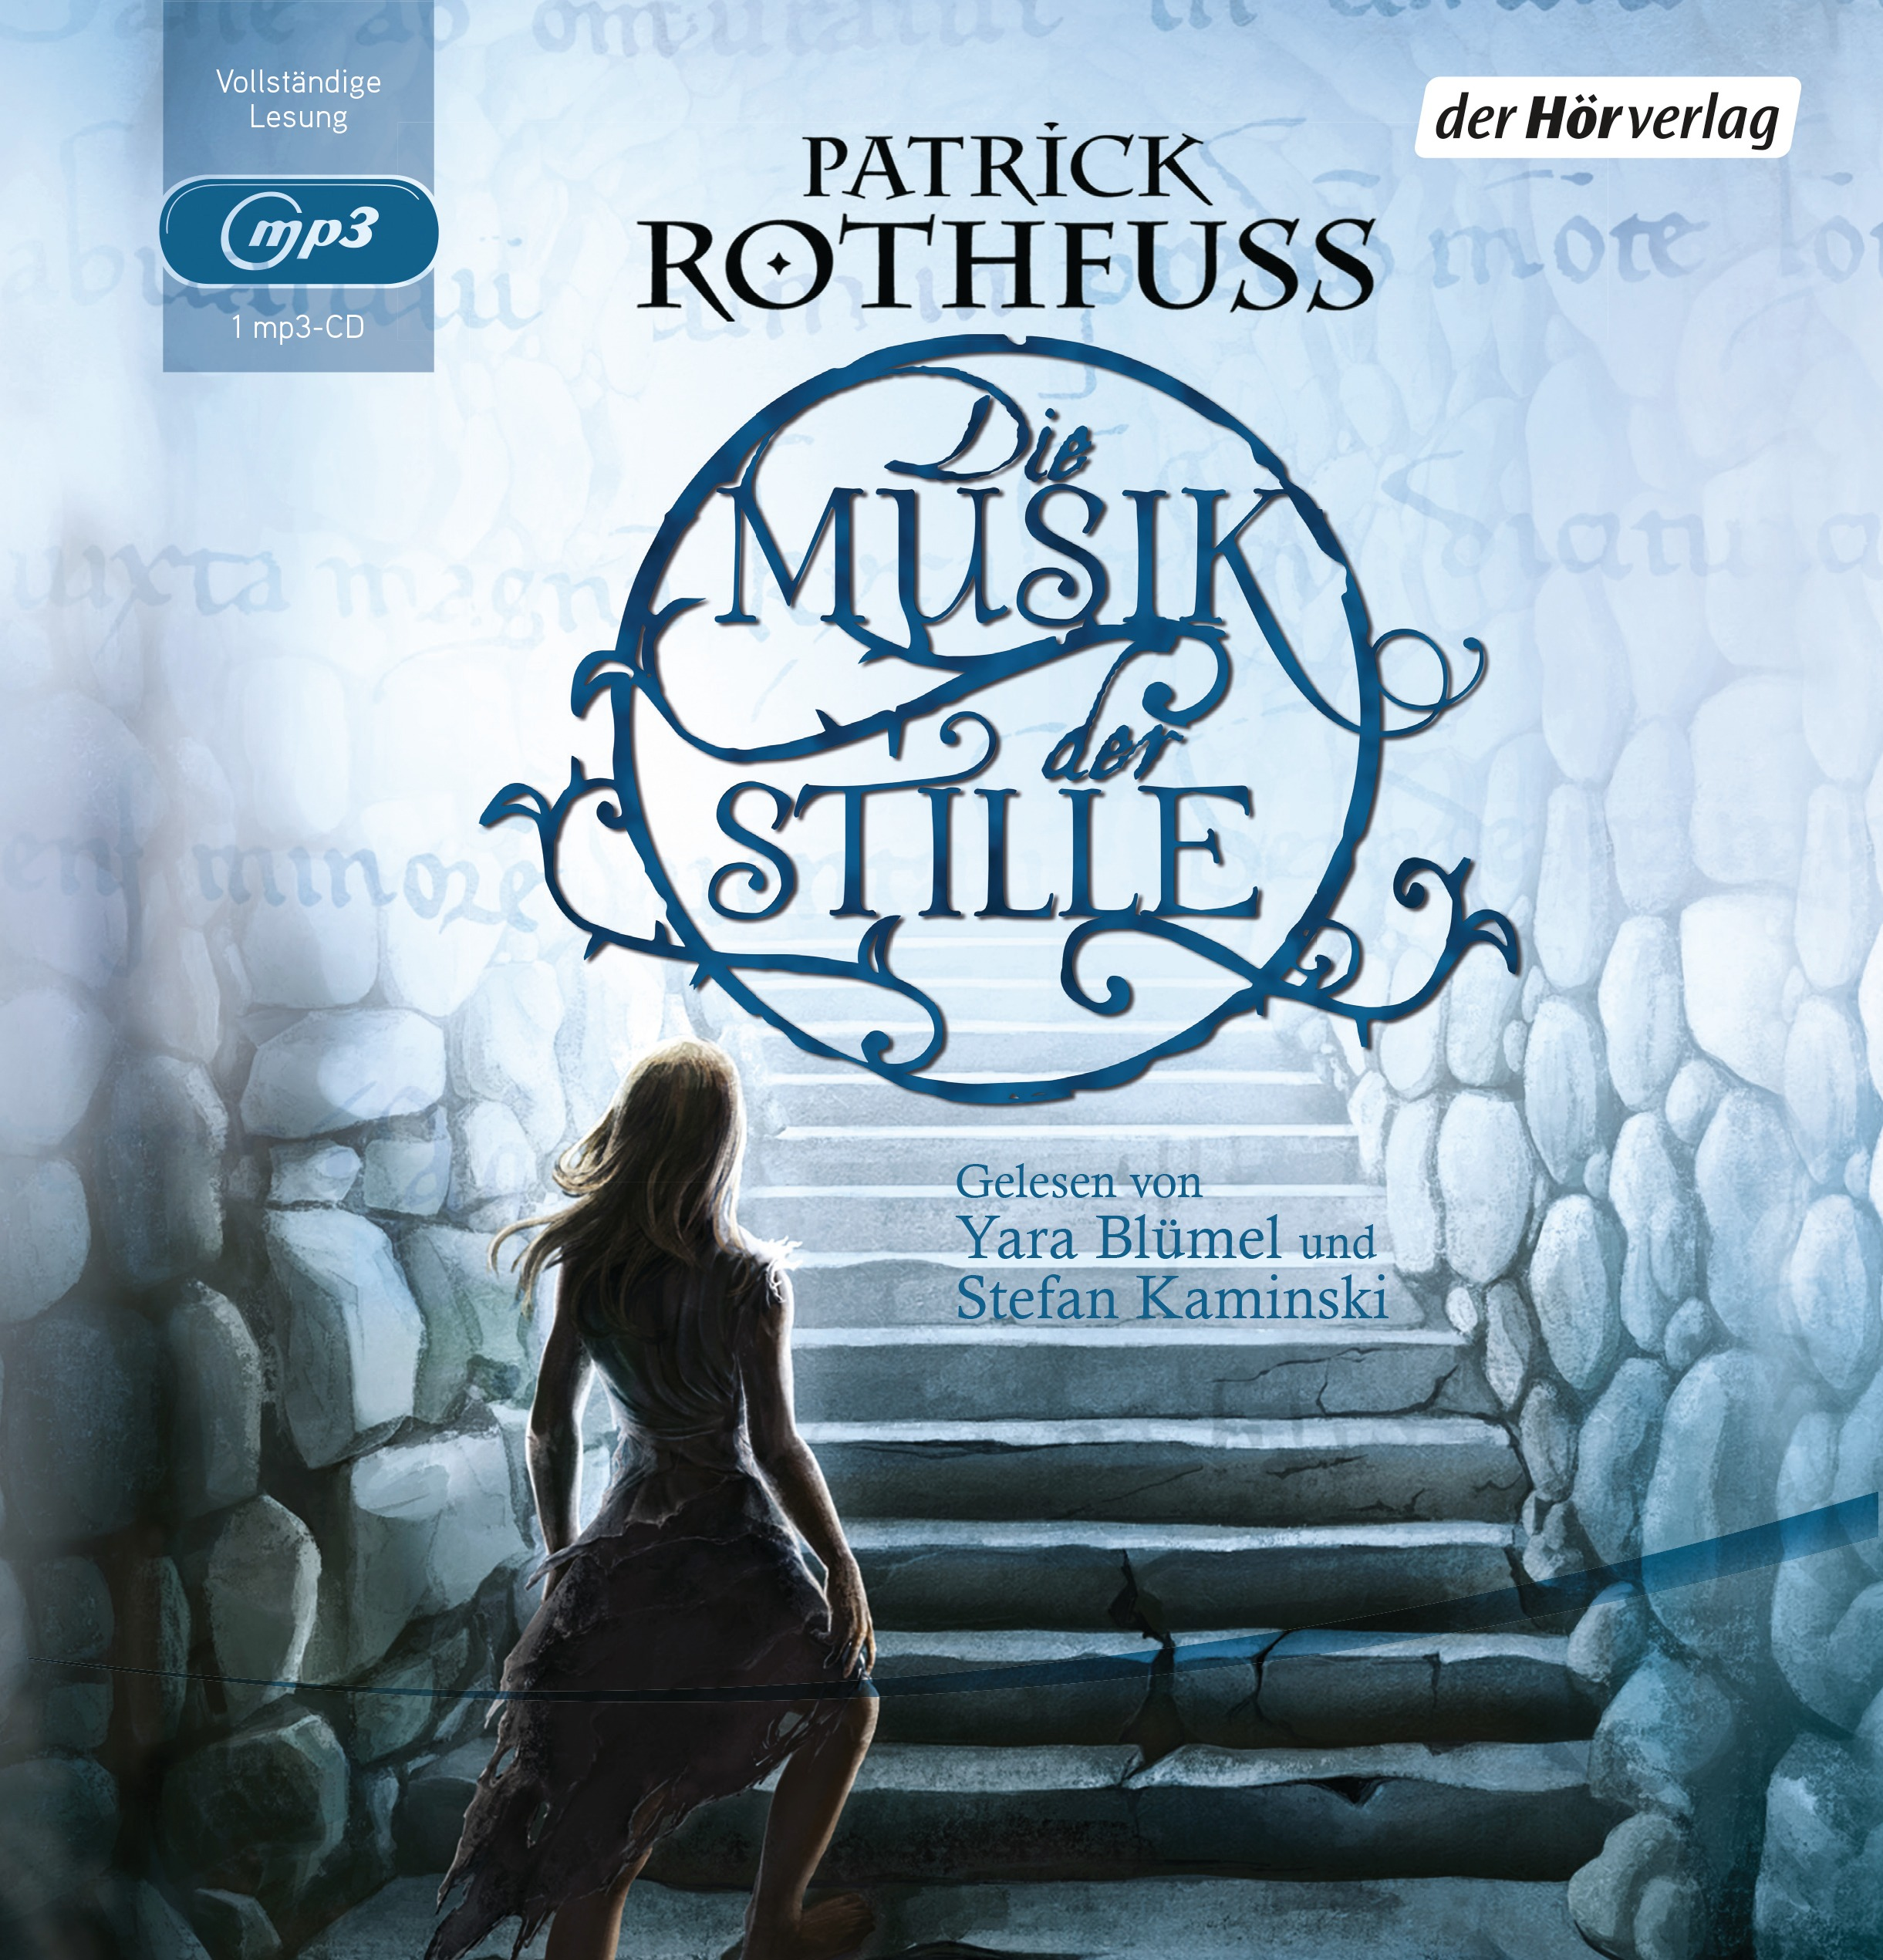 Die Musik der Stille - Patrick Rothfuss [mp3-CD]